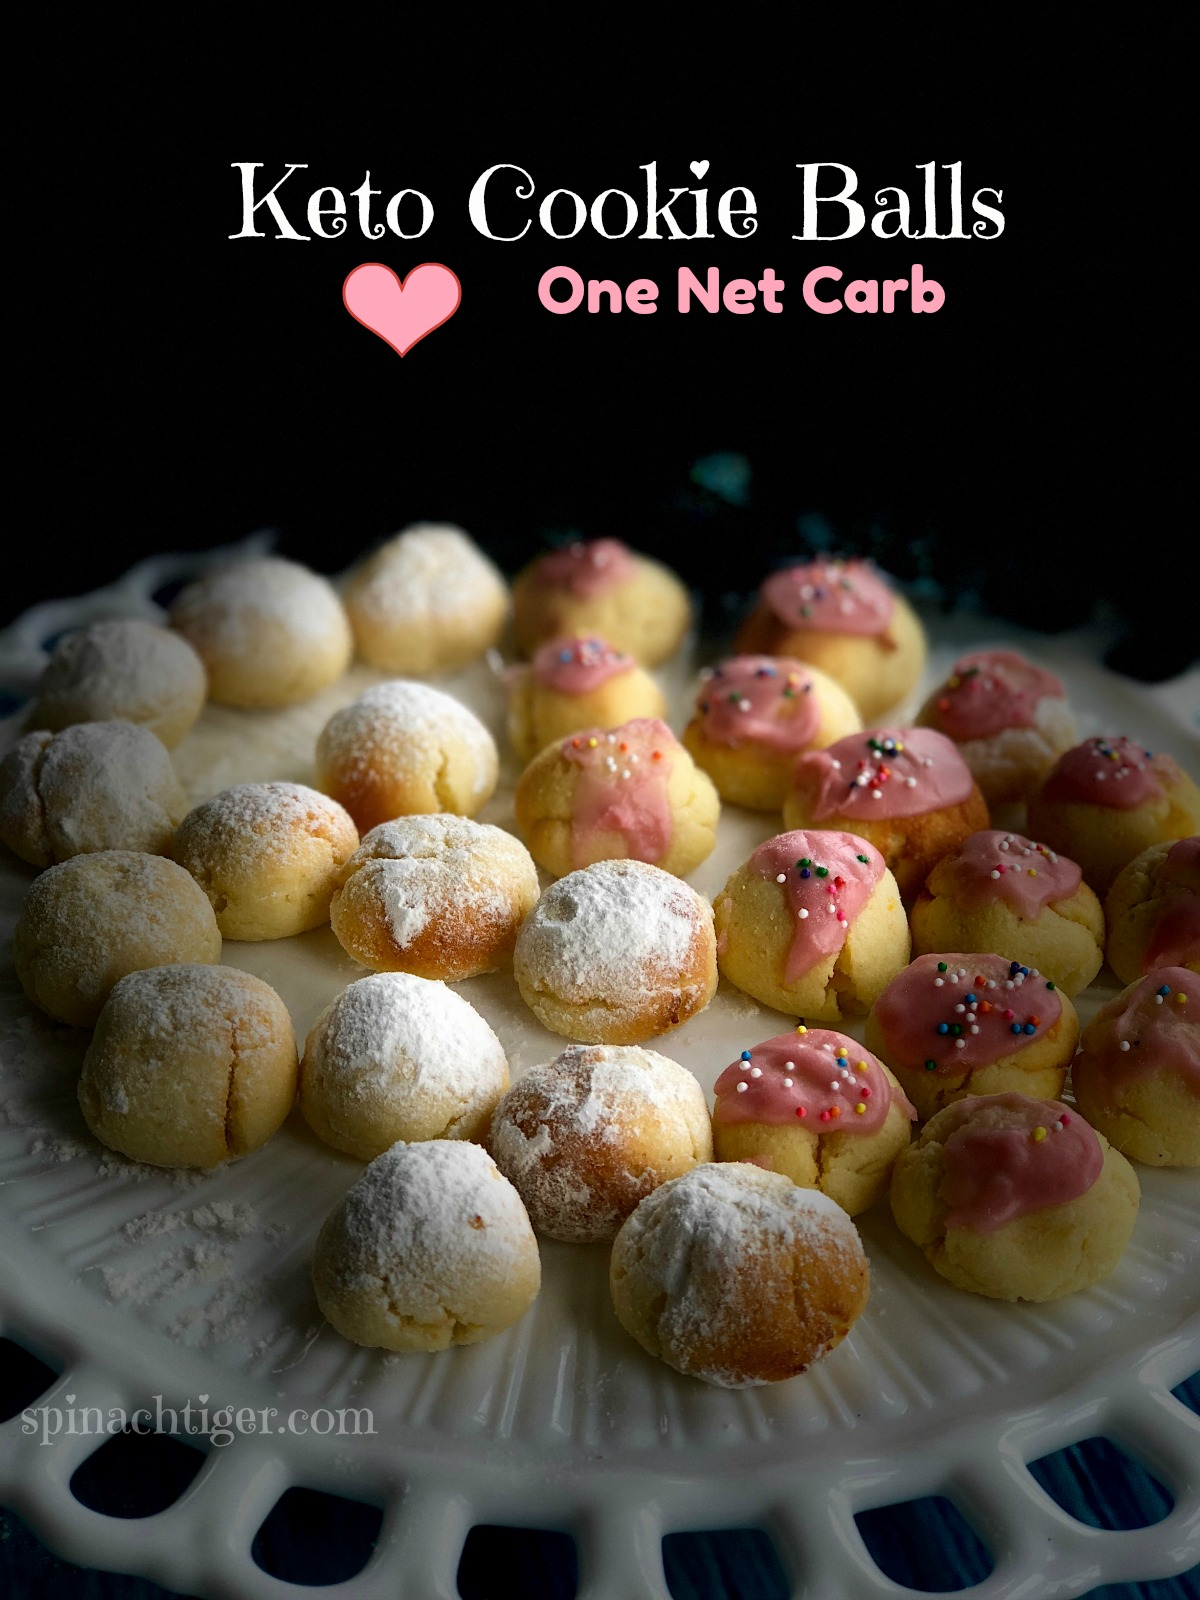 Keto RIcotta Cookies made with coconut flour. Can be rolled in Swerve confectioner's or unsweetened cranberry juice glaze. #ketocookies #ketochristmascookies #spinachtiger via @angelaroberts